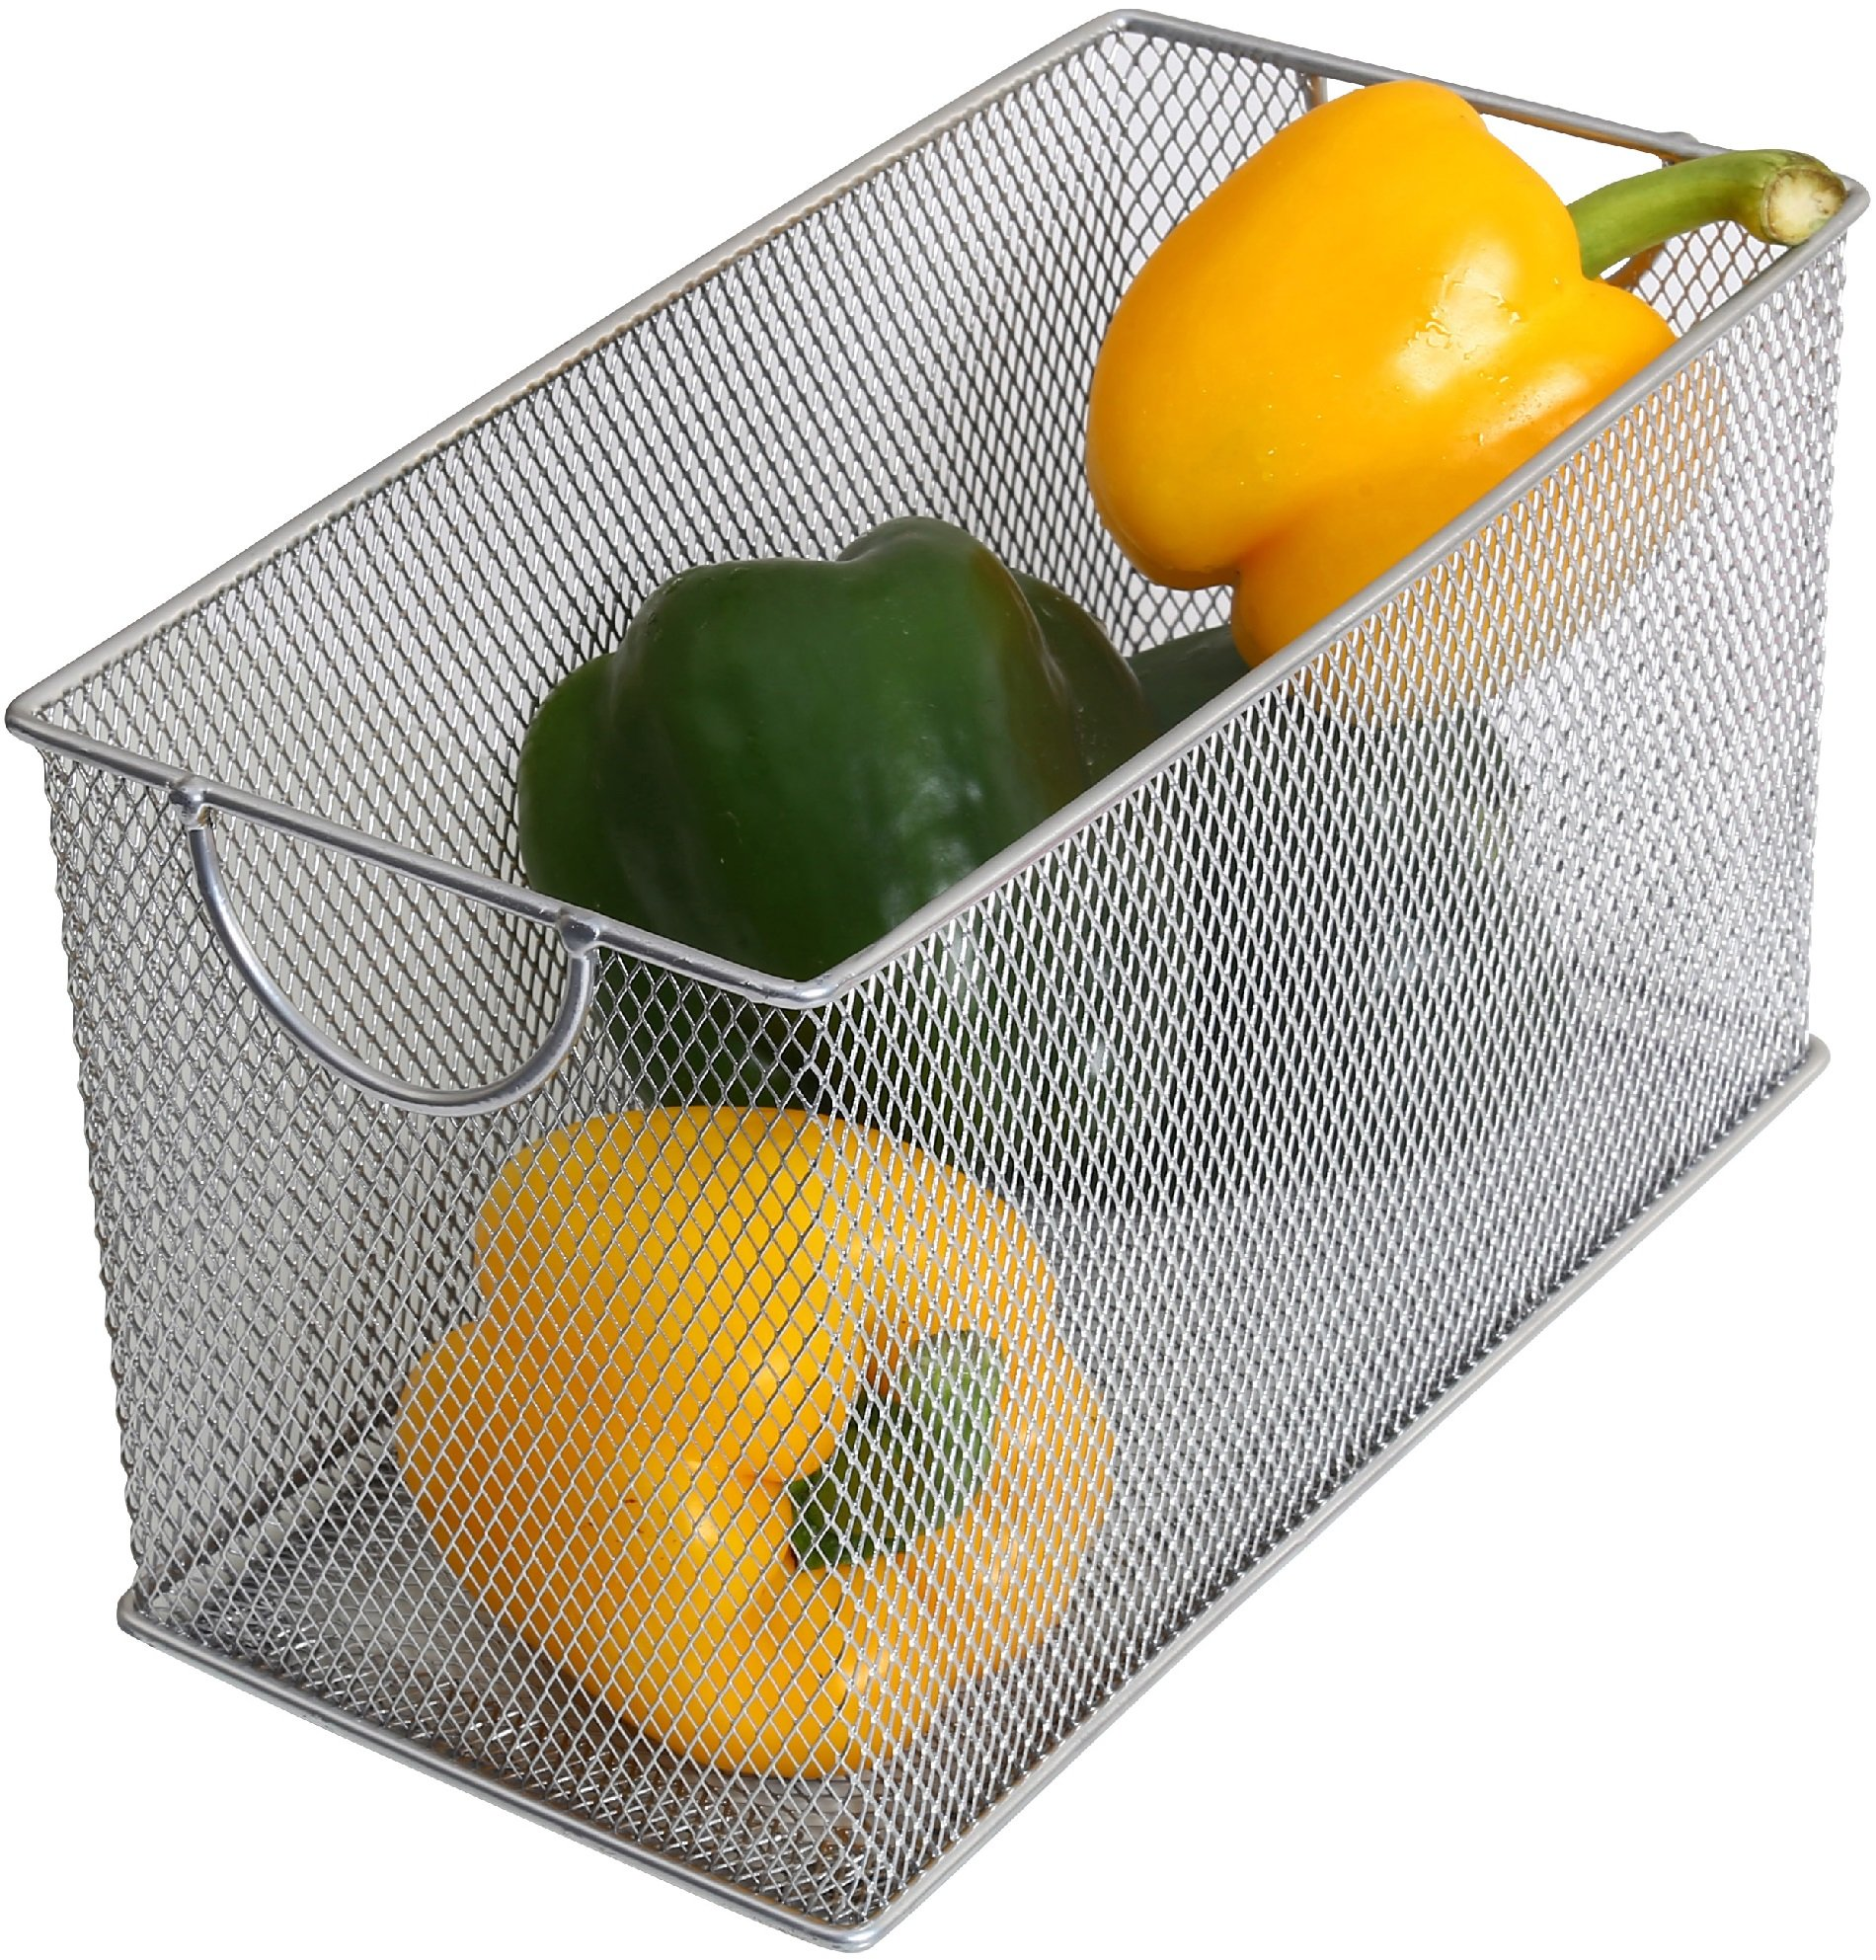 Ybm Home Mesh Storage Box, Silver Mesh Great for School Home or Office Supplies, Books , Computer Discs and More 2302 (1, Zip Box- 8 X 4.5 X 4.8 Inches)